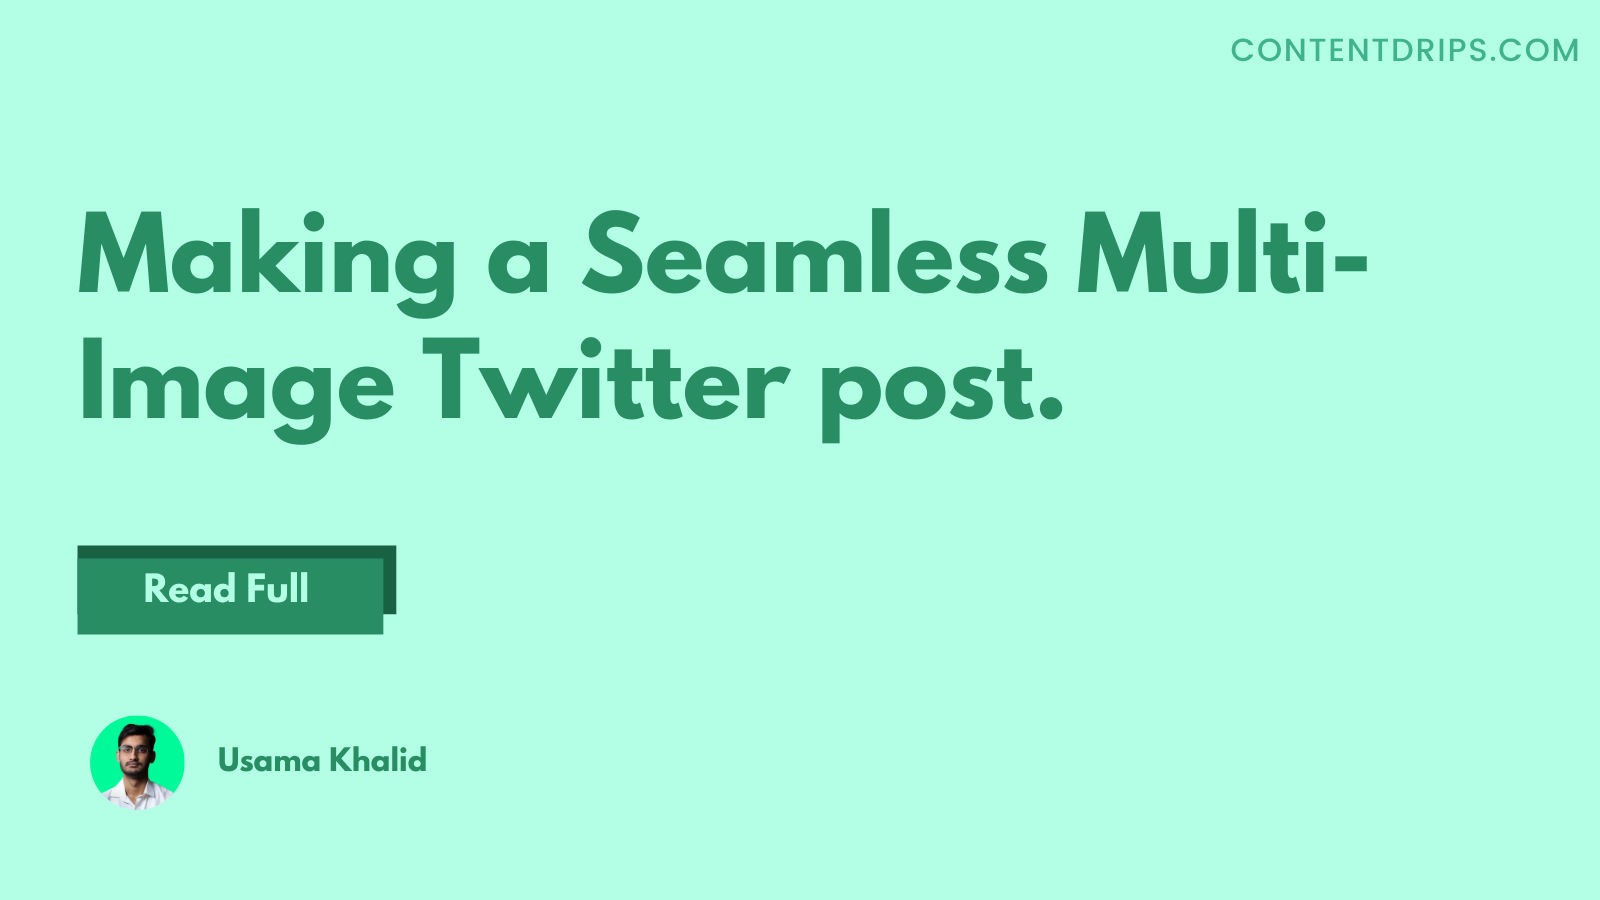 How to make seamless multi-image Twitter posts that gets more clicks?